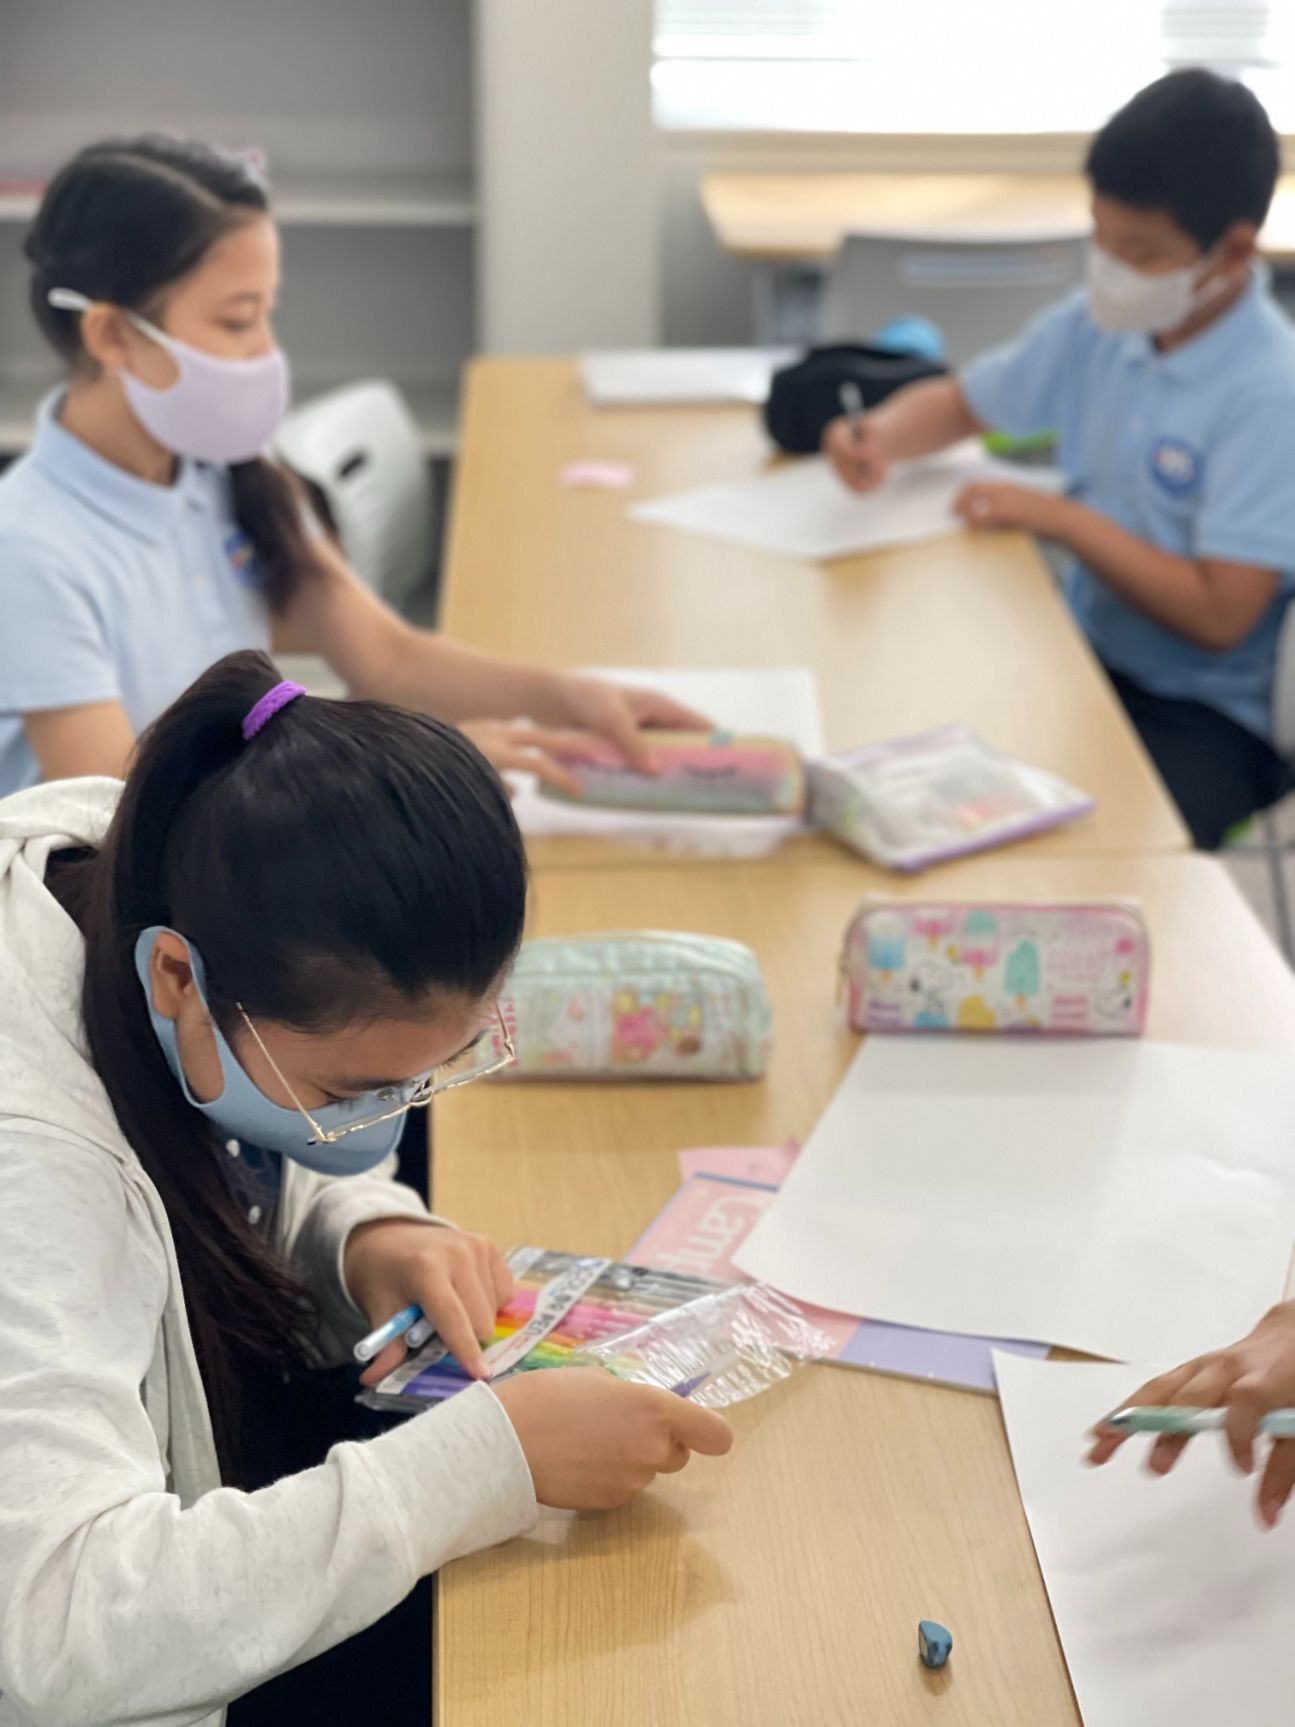 Middle school students in the classroom from SIS Oimachi Campus